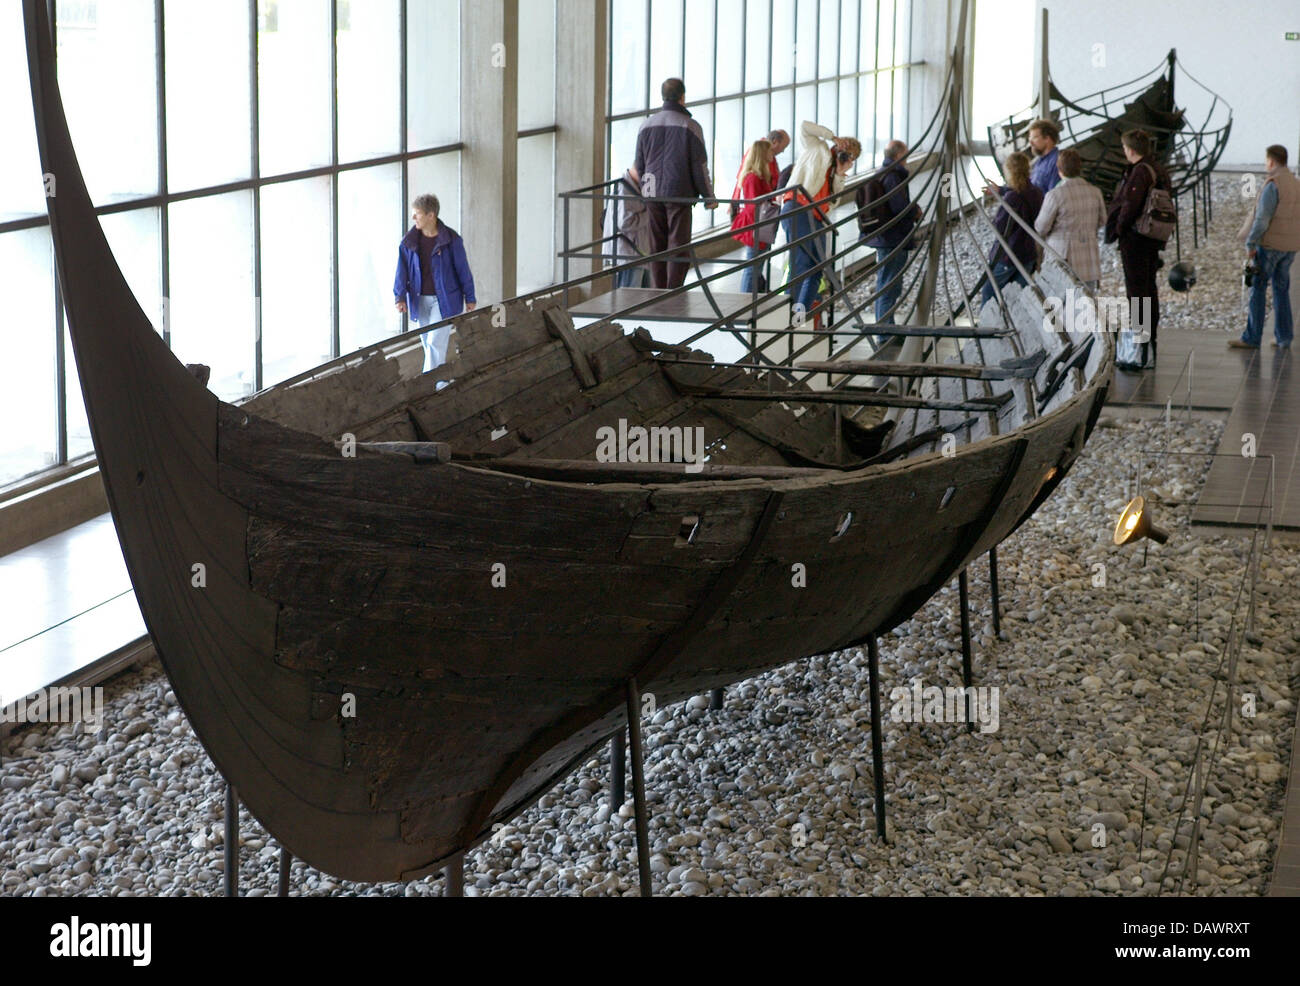 Visitors take a look at Viking ships from the 11th century, discoverd in the Roskilde fjord in 1962, in the ship Stock Photo